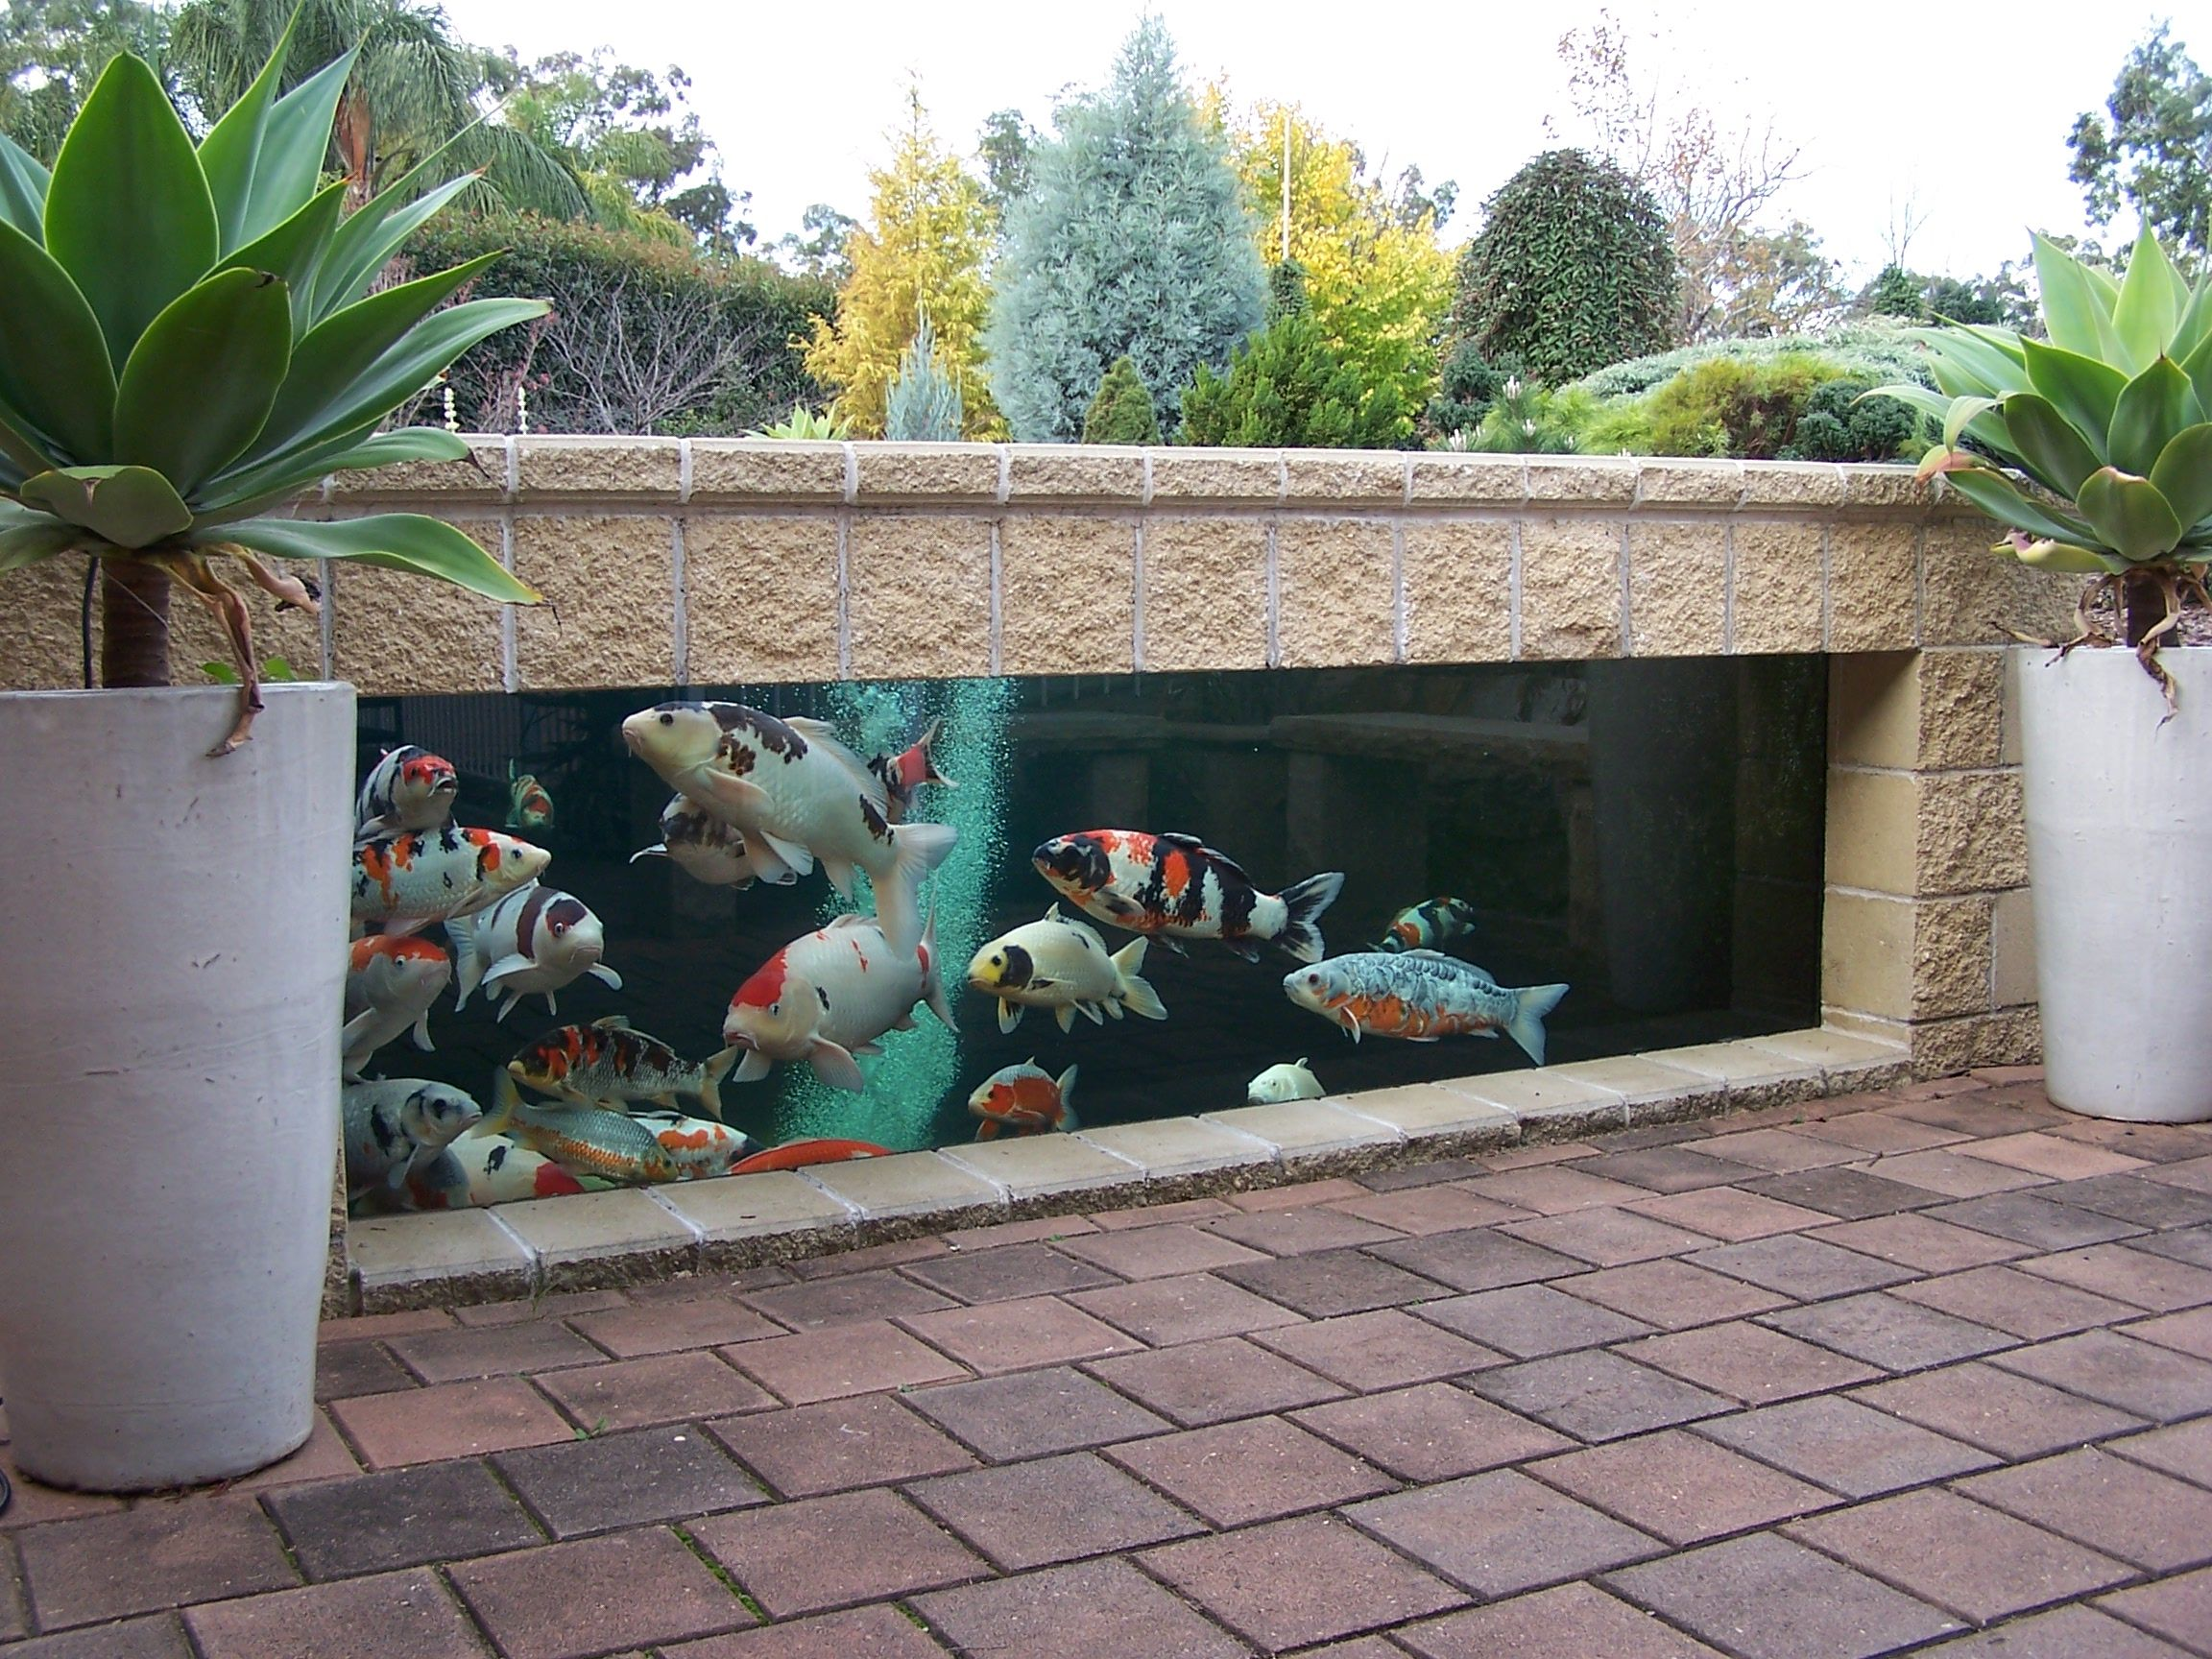 Fish pond designs pictures - Pond Design Management Or Get Pictures And Ideas For Ponds Landscape Architect With Different Plants And Even Fish Design